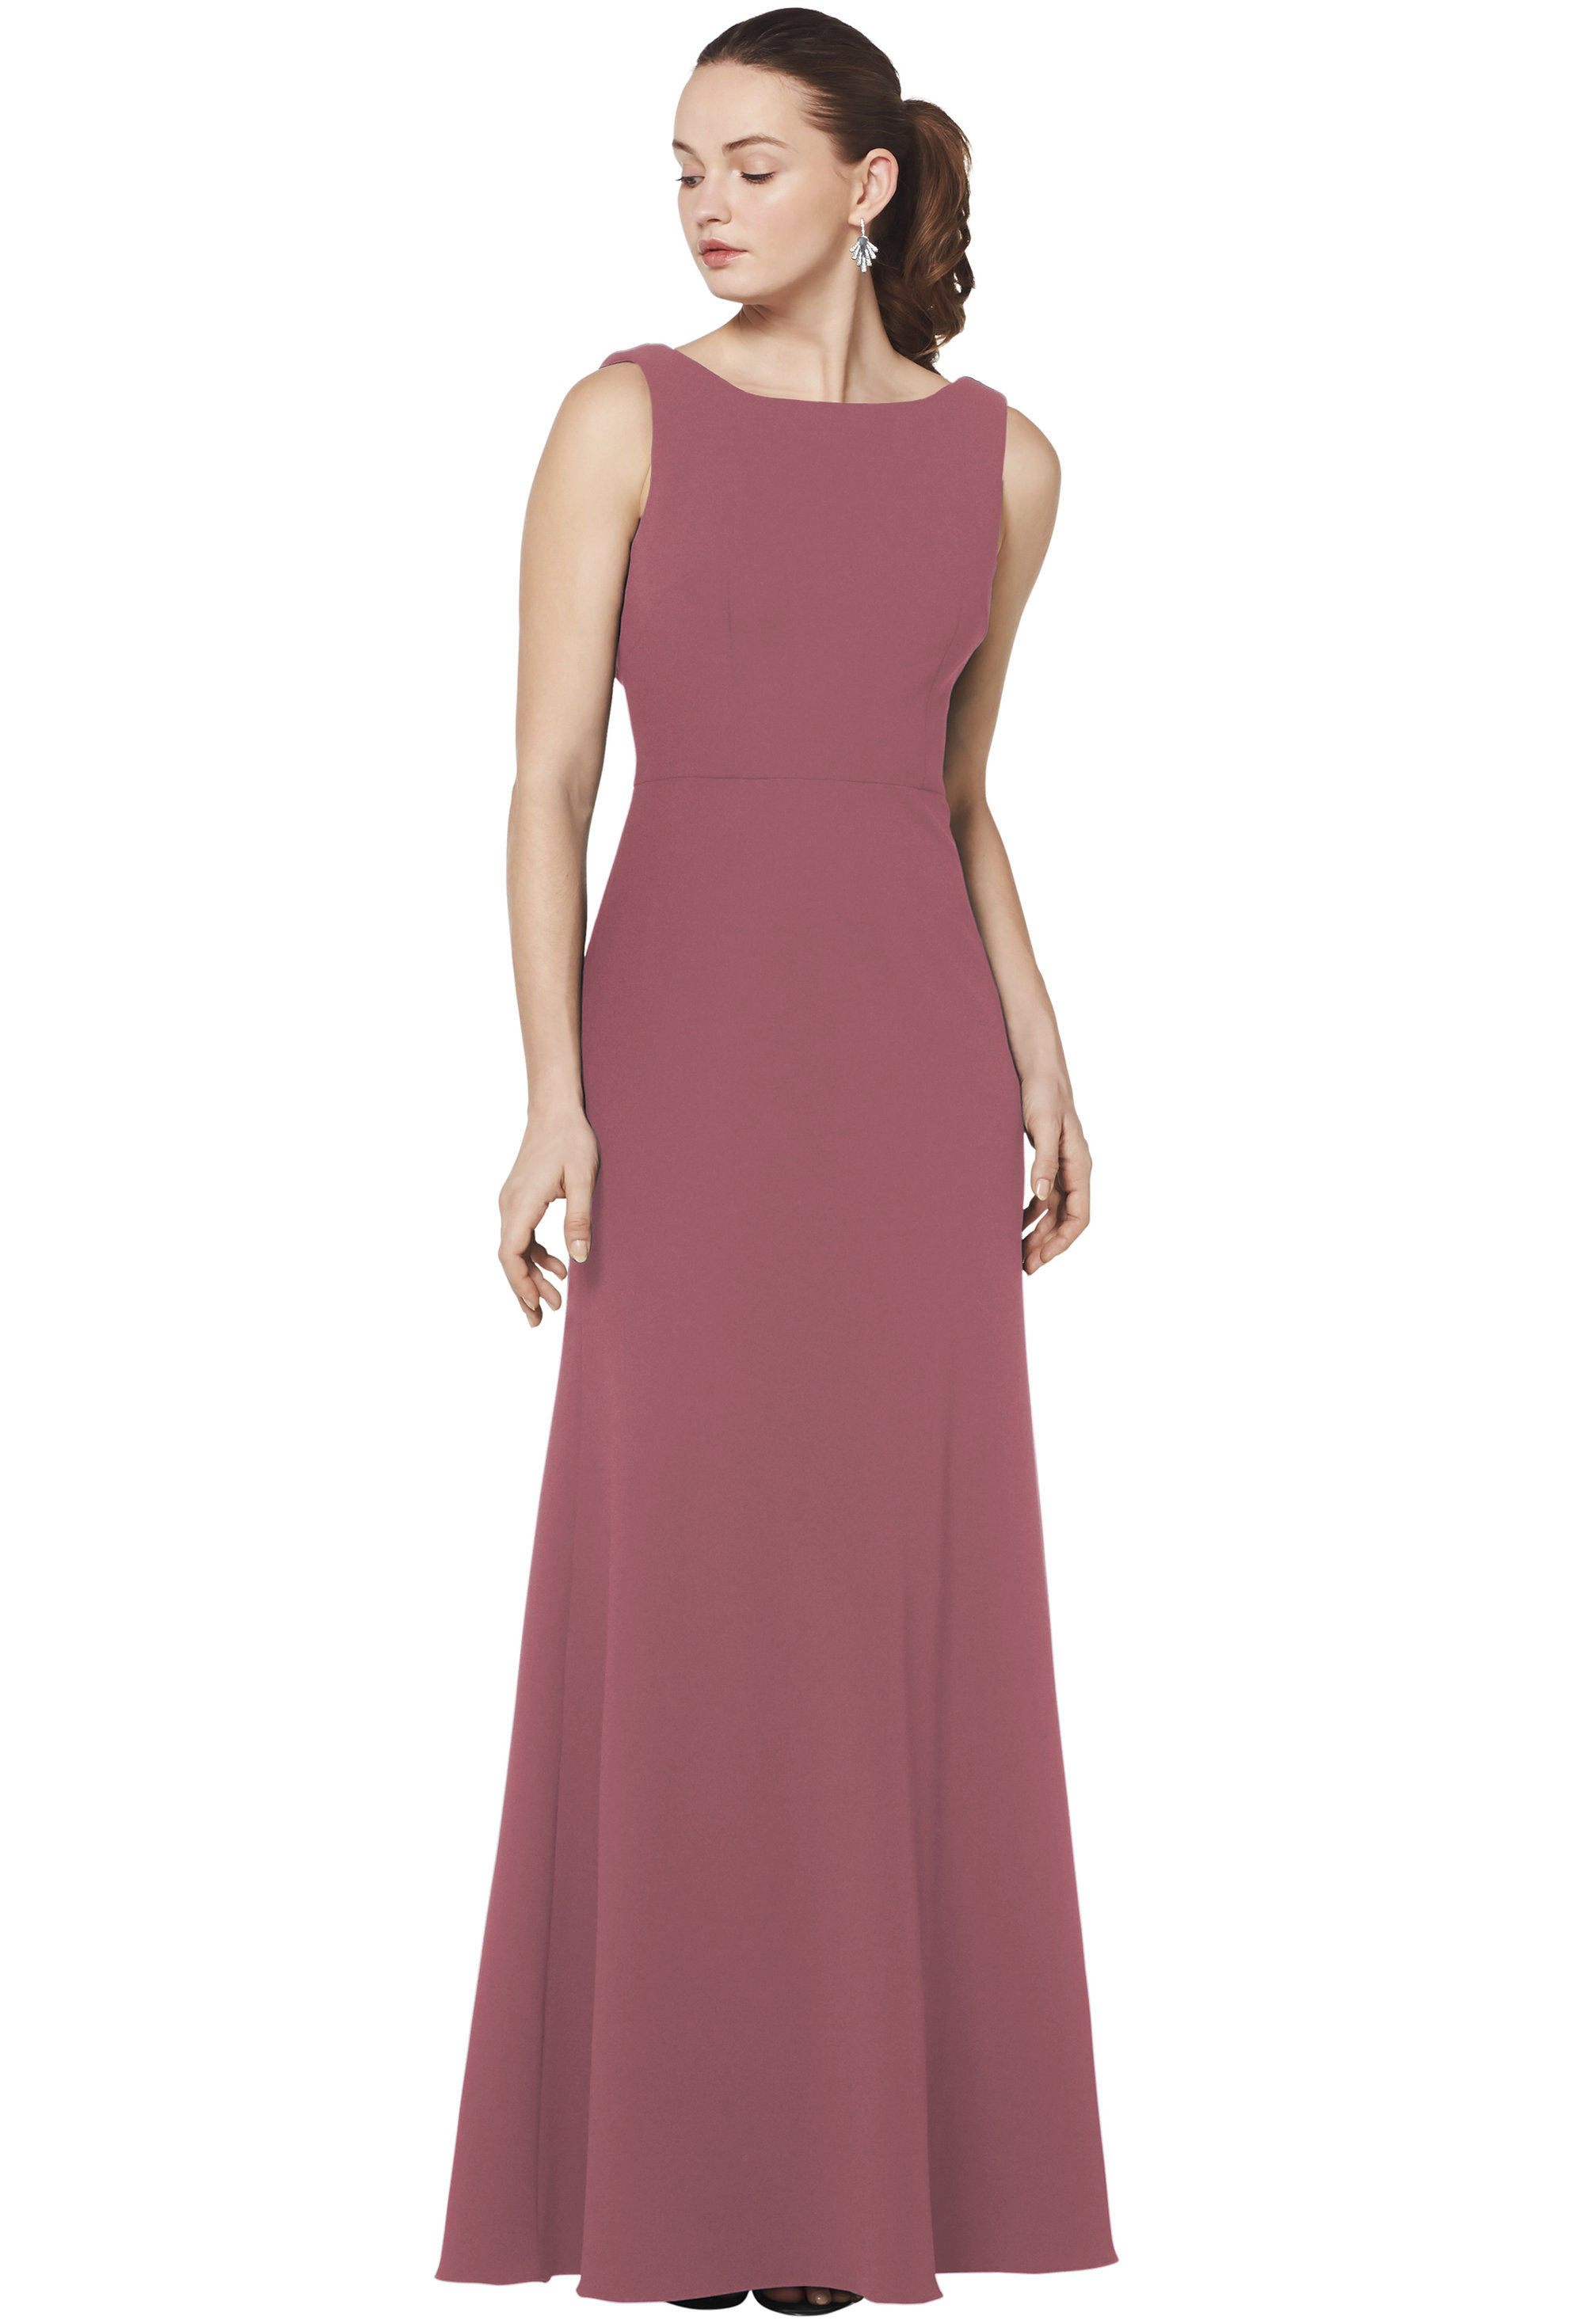 Bill Levkoff ROSEWOOD Stretch Crepe Bateau Neckline A-line gown, $230.00 Front